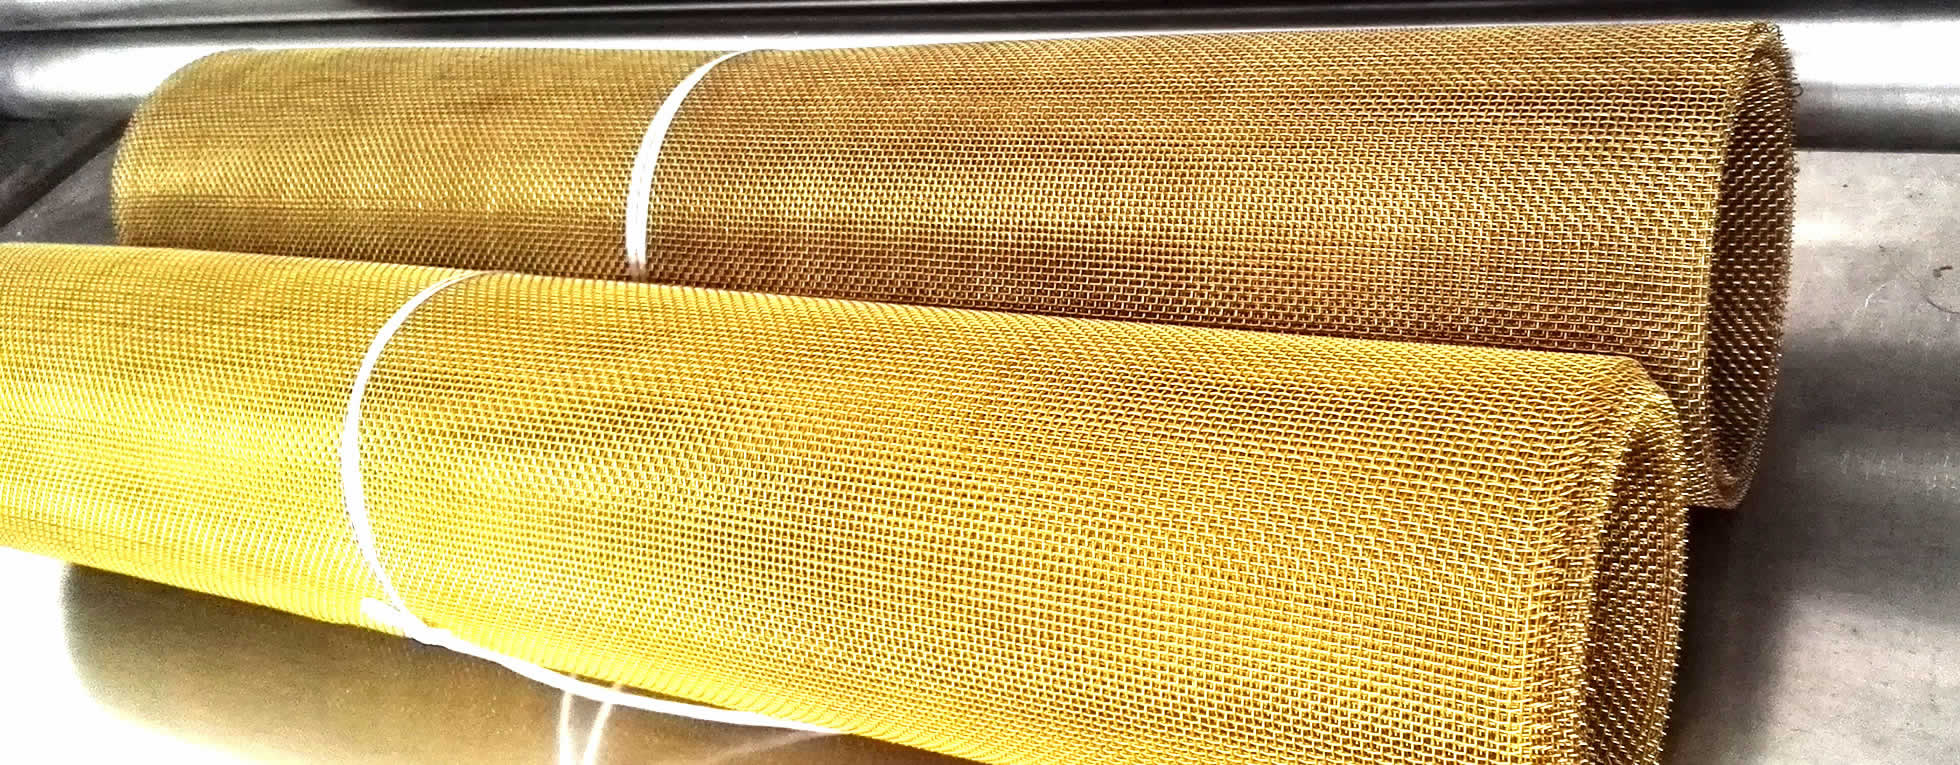 Brass Wire Mesh : Brass mesh and copper for decorative